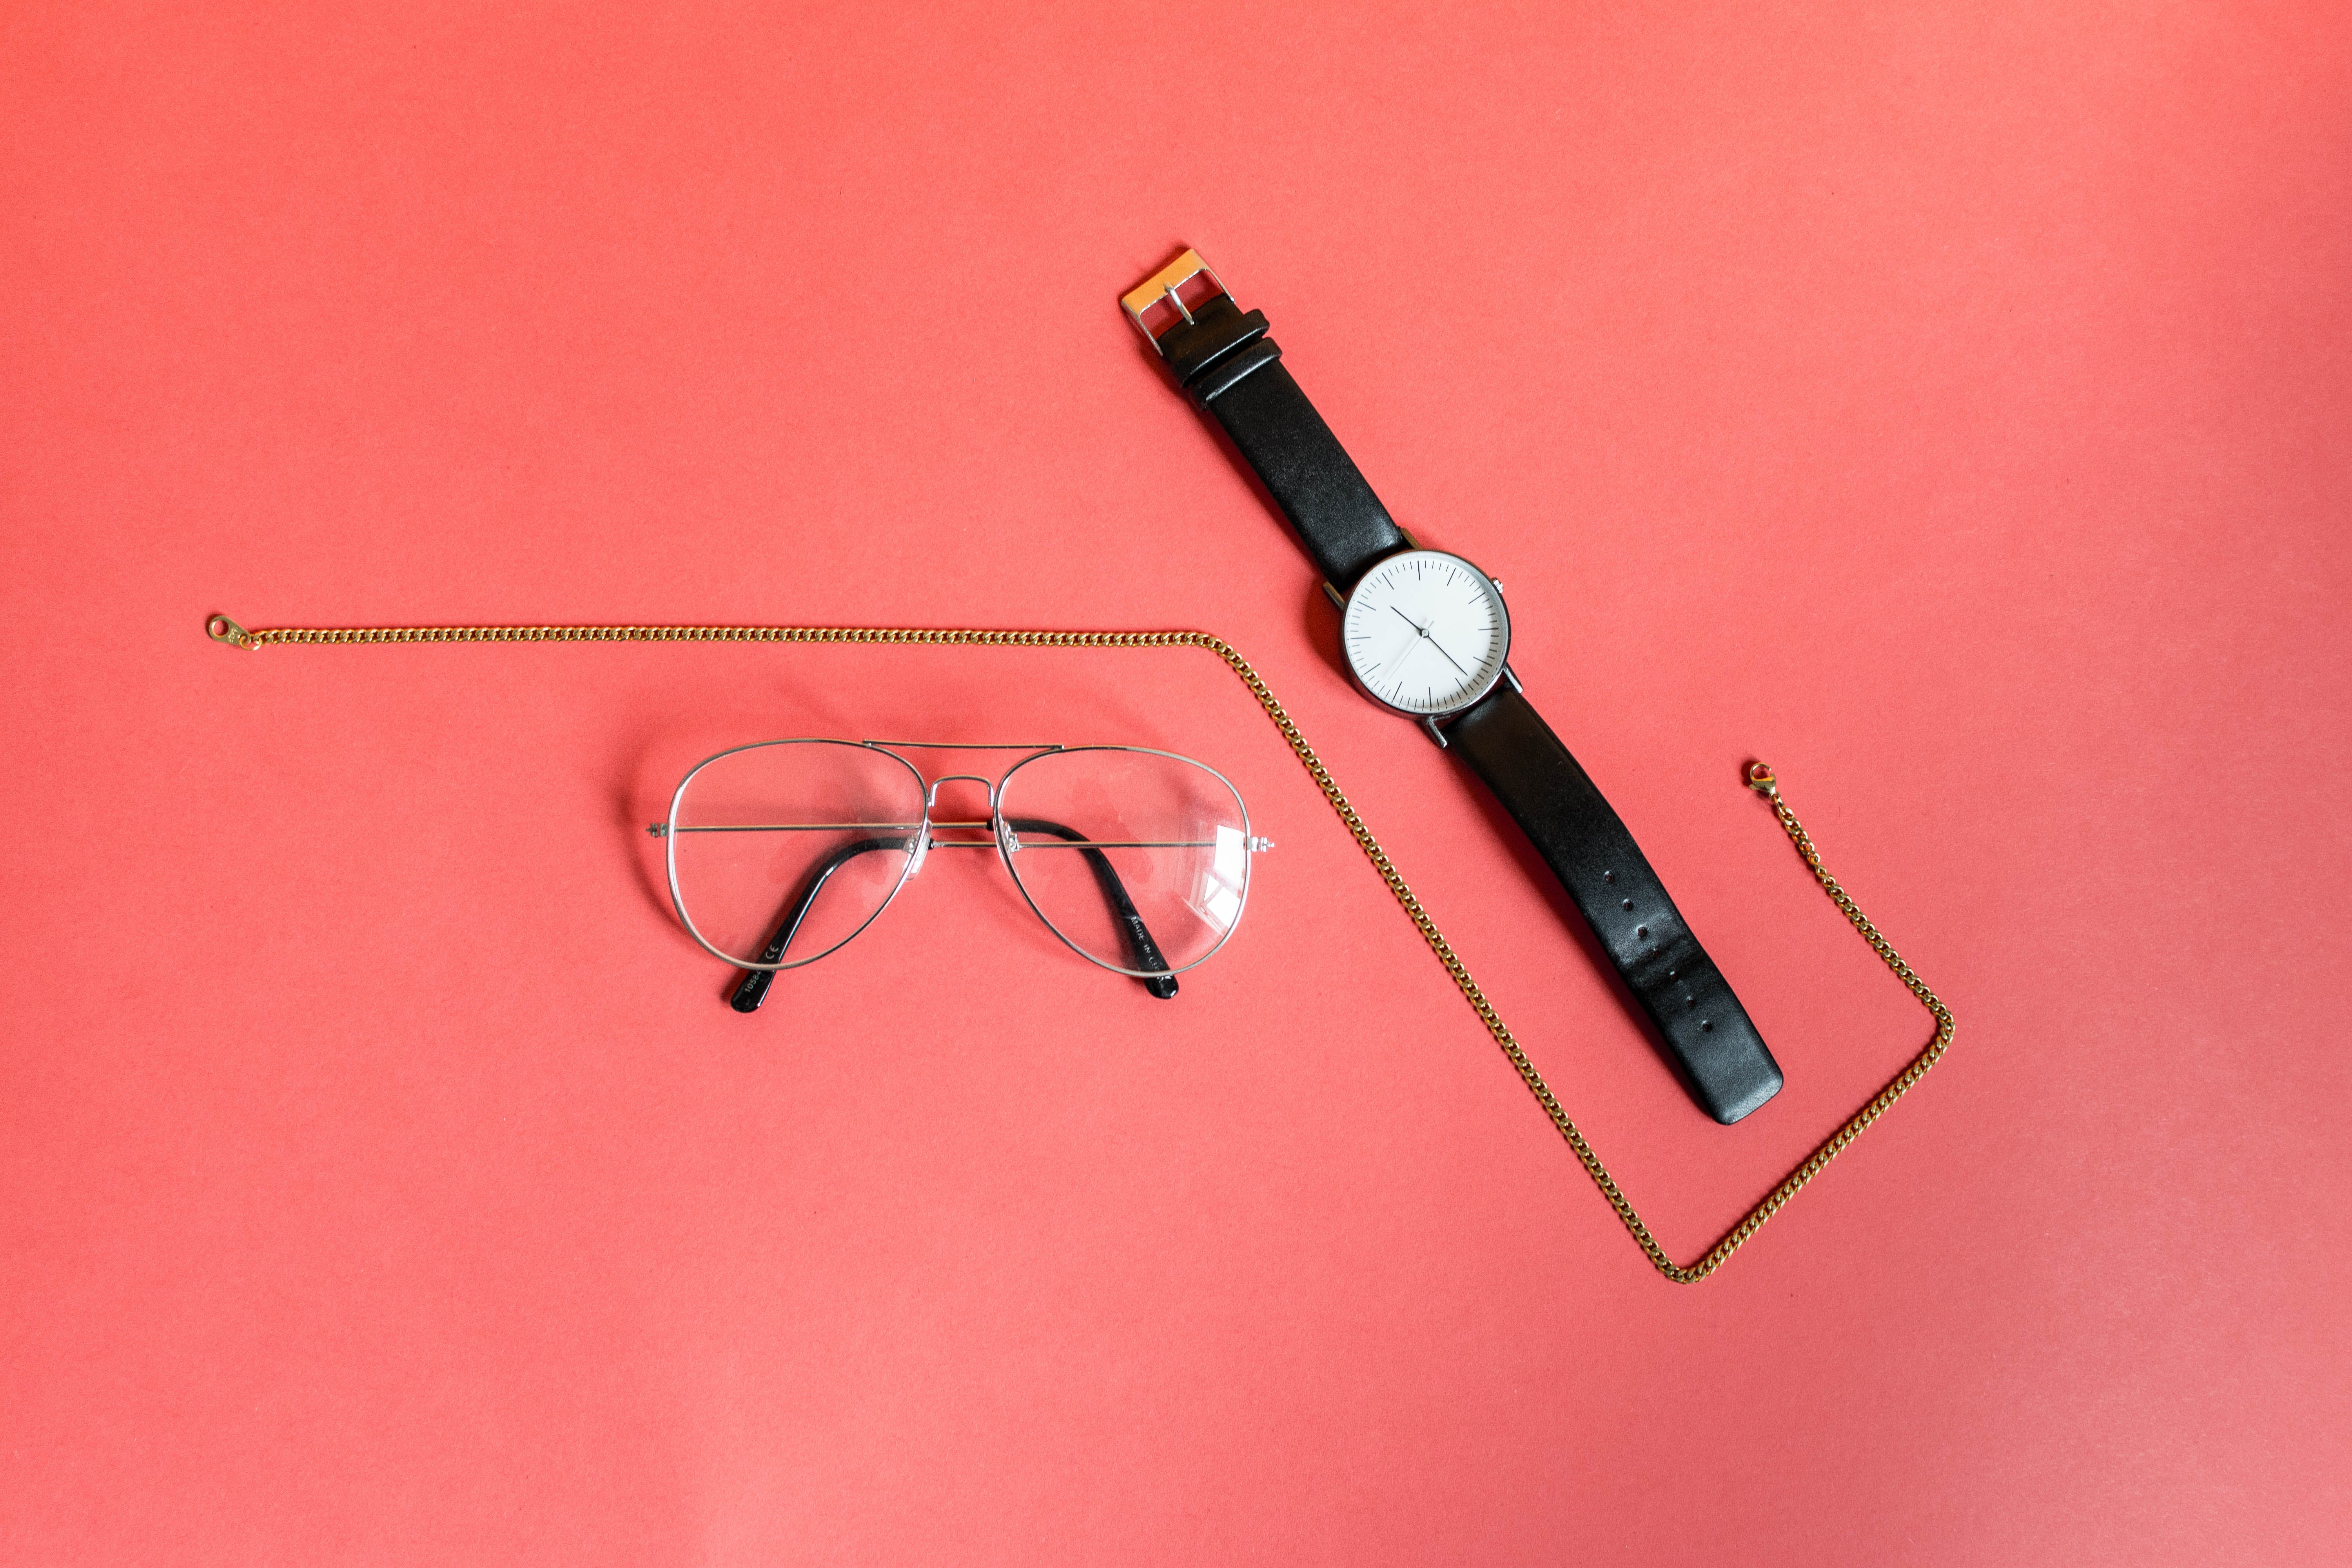 Gold-colored Necklace in Between Analog Watch and Eyeglasses on Pink Surface